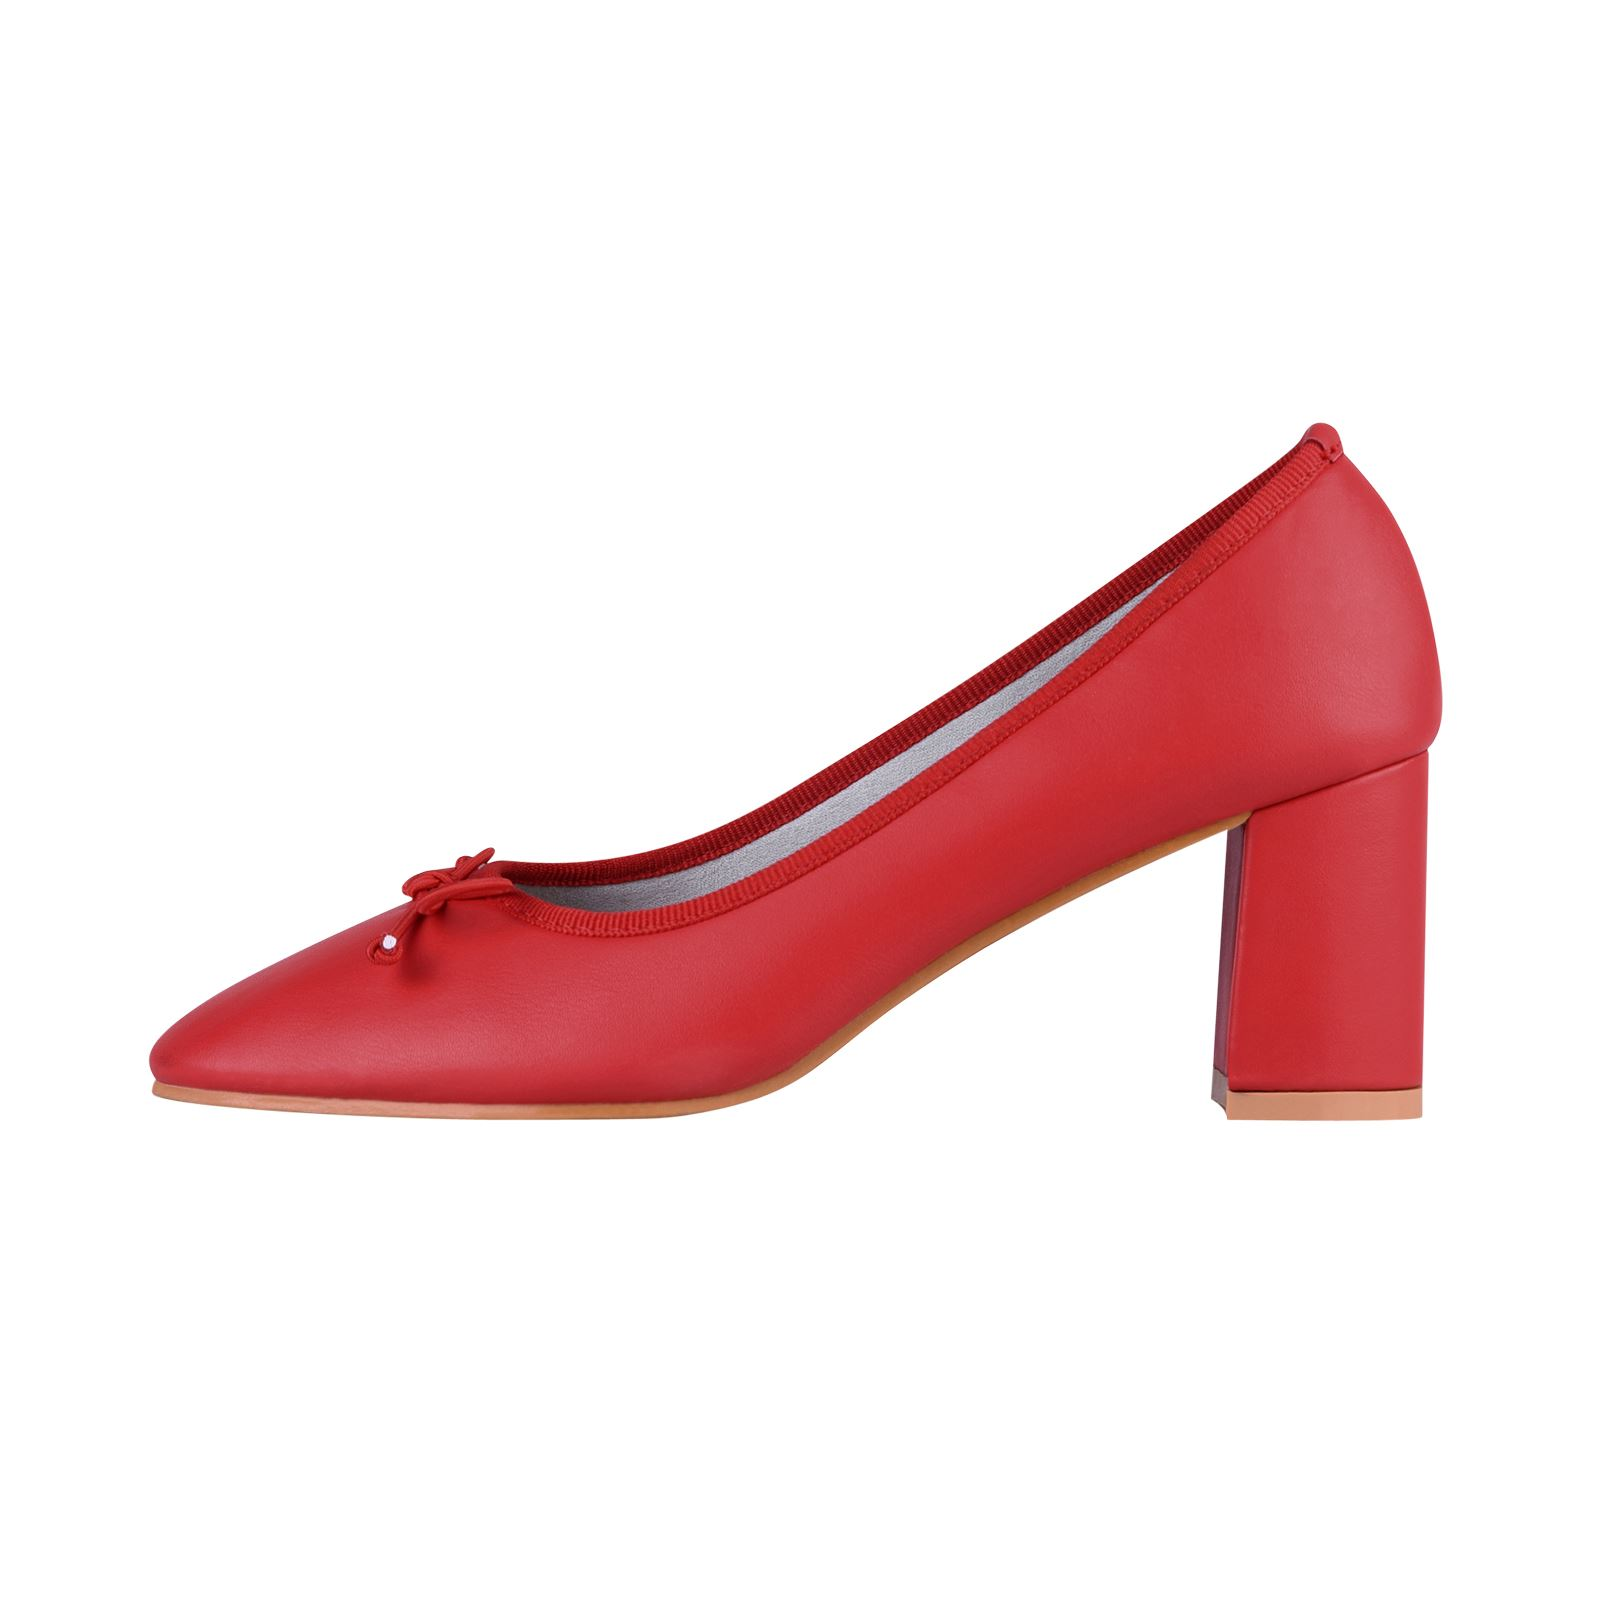 Details about Womens Low Mid Block Heel Courts Ladies Work Shoes Party Ballerina Pumps Office